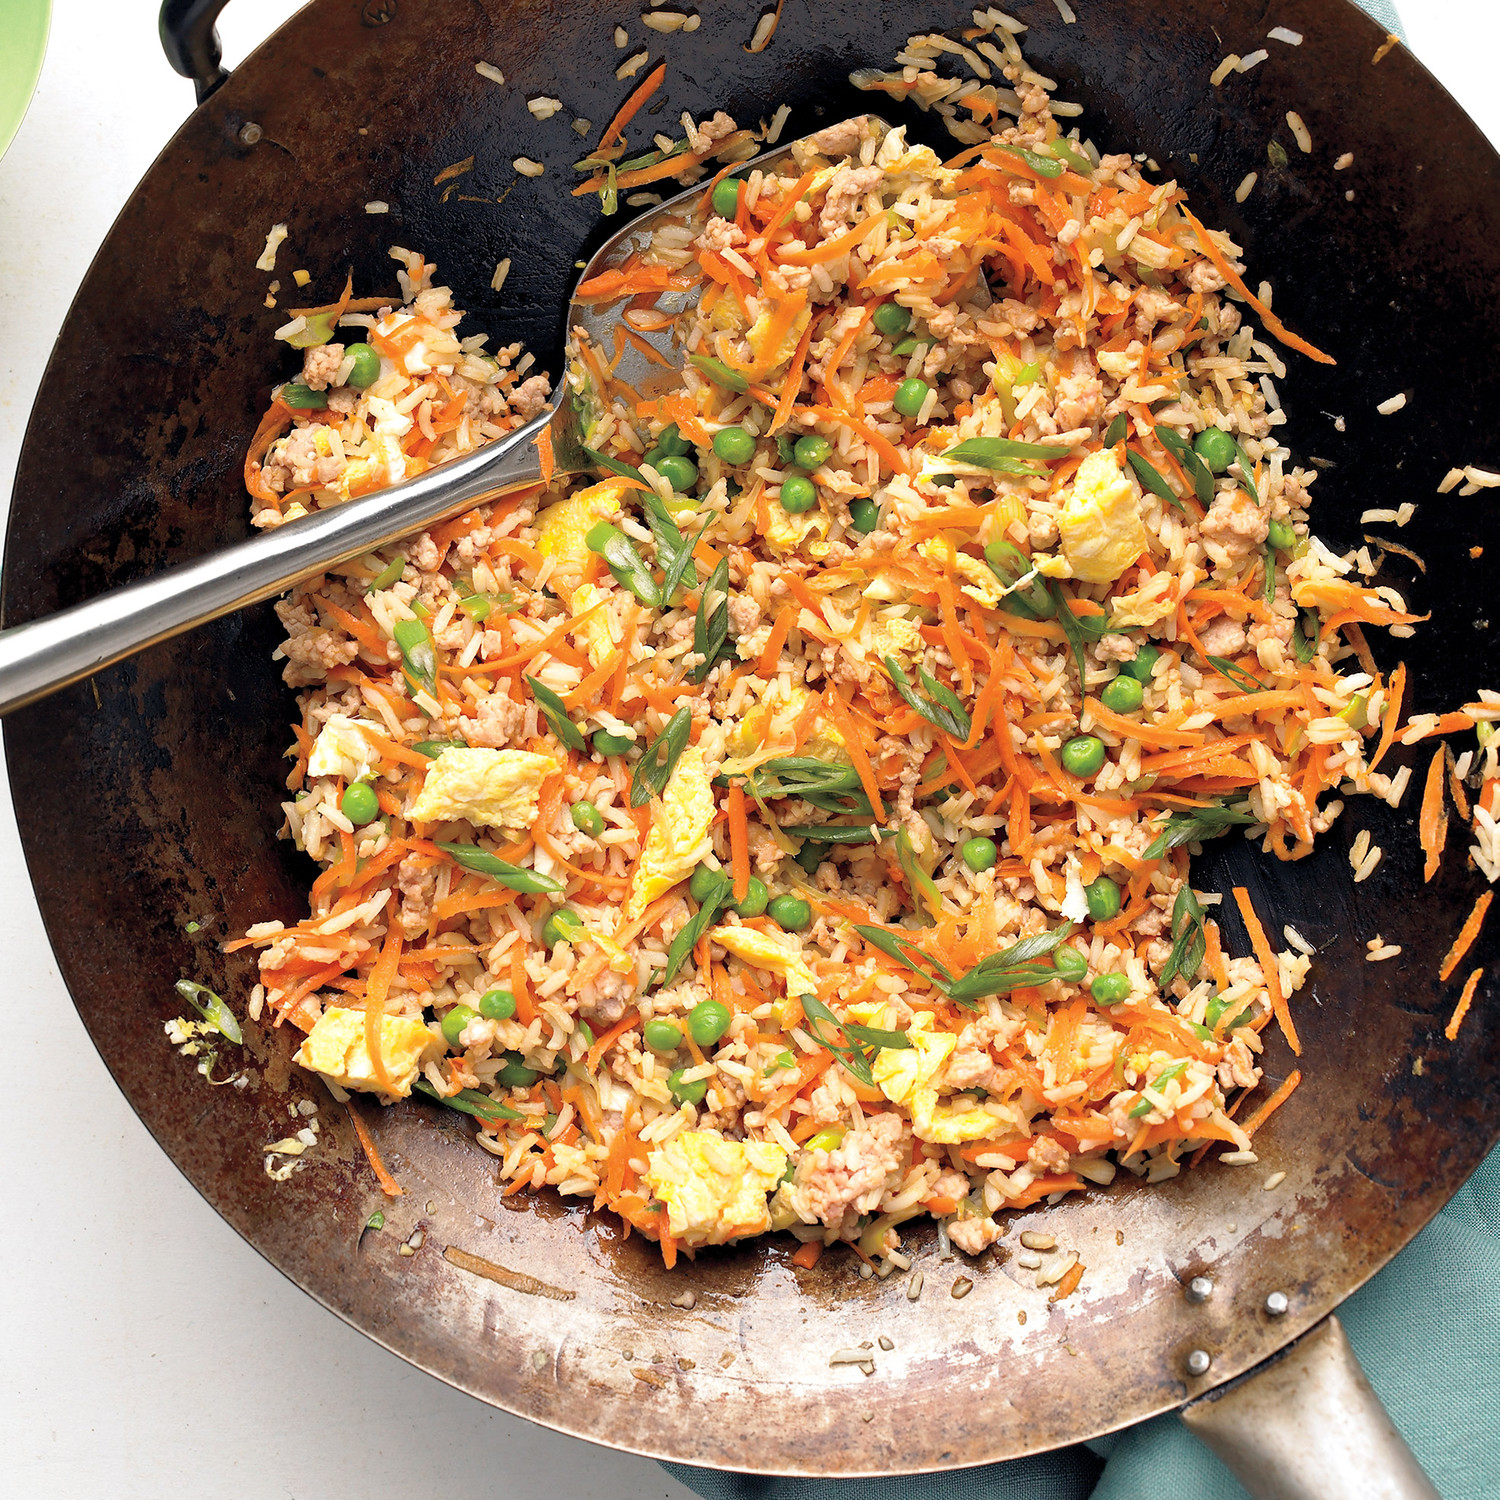 Pork fried rice recipe video martha stewart forumfinder Gallery